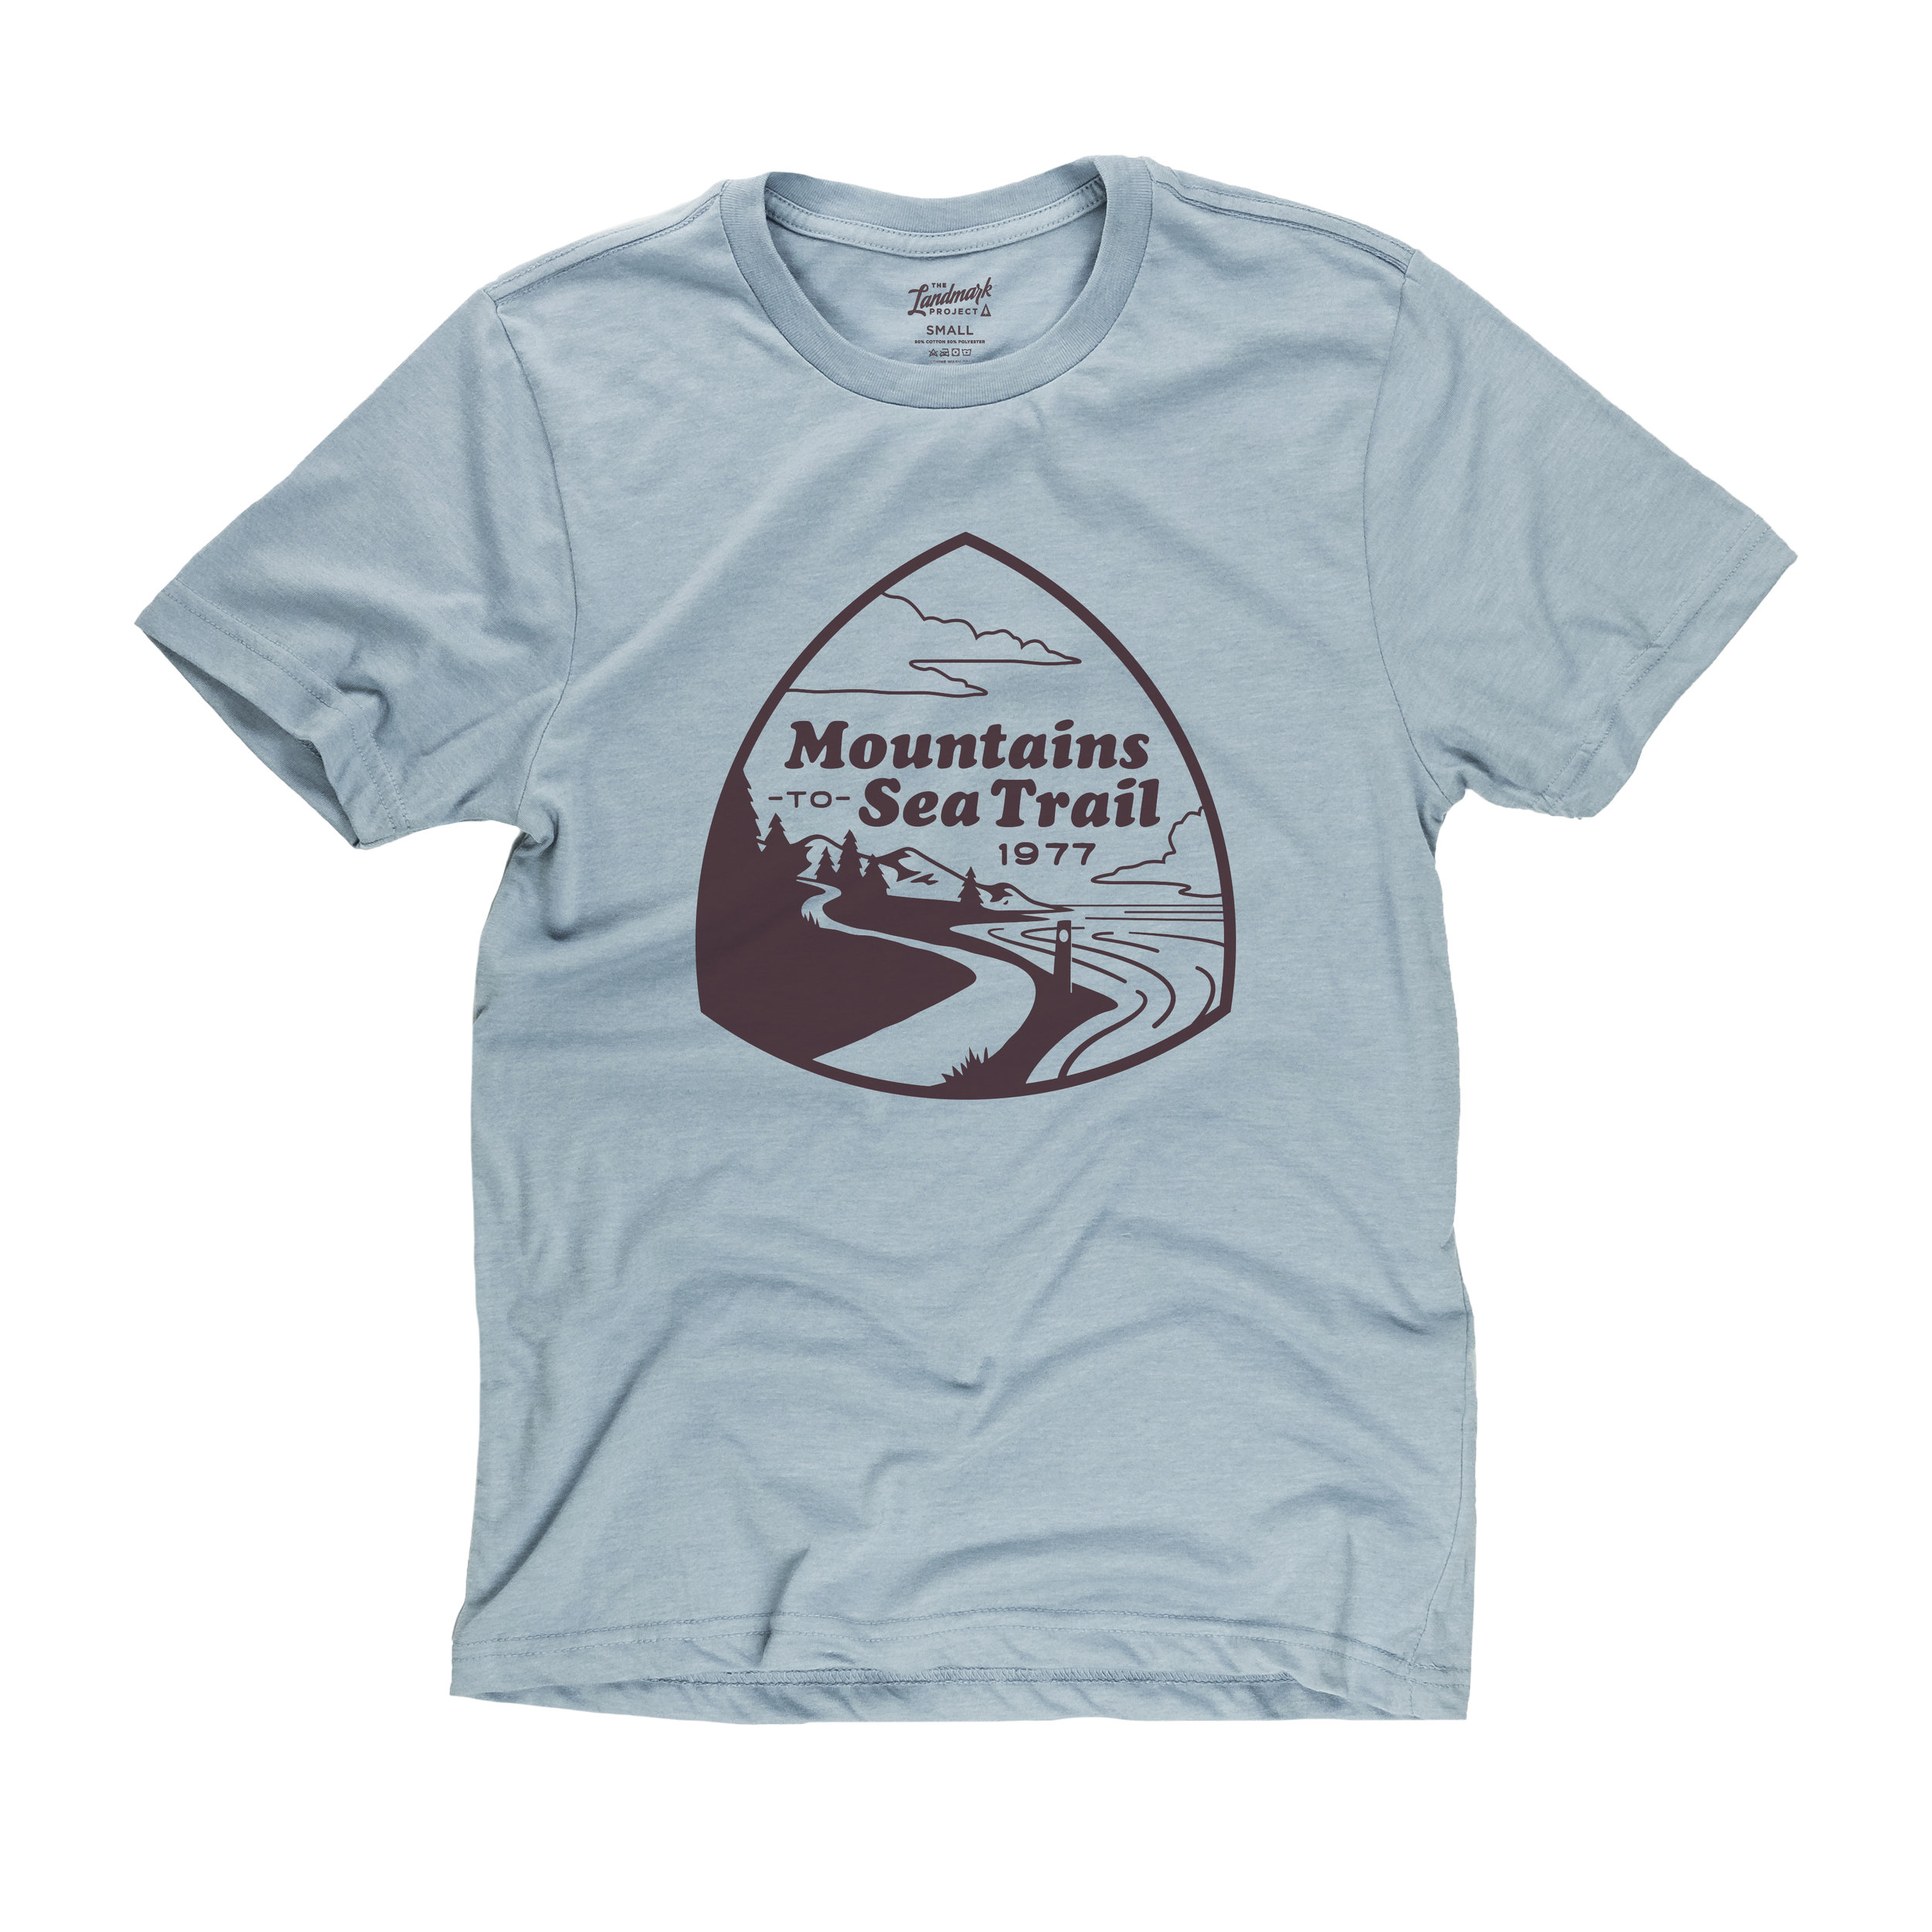 mountains2seatrail-chambray-tee.jpg